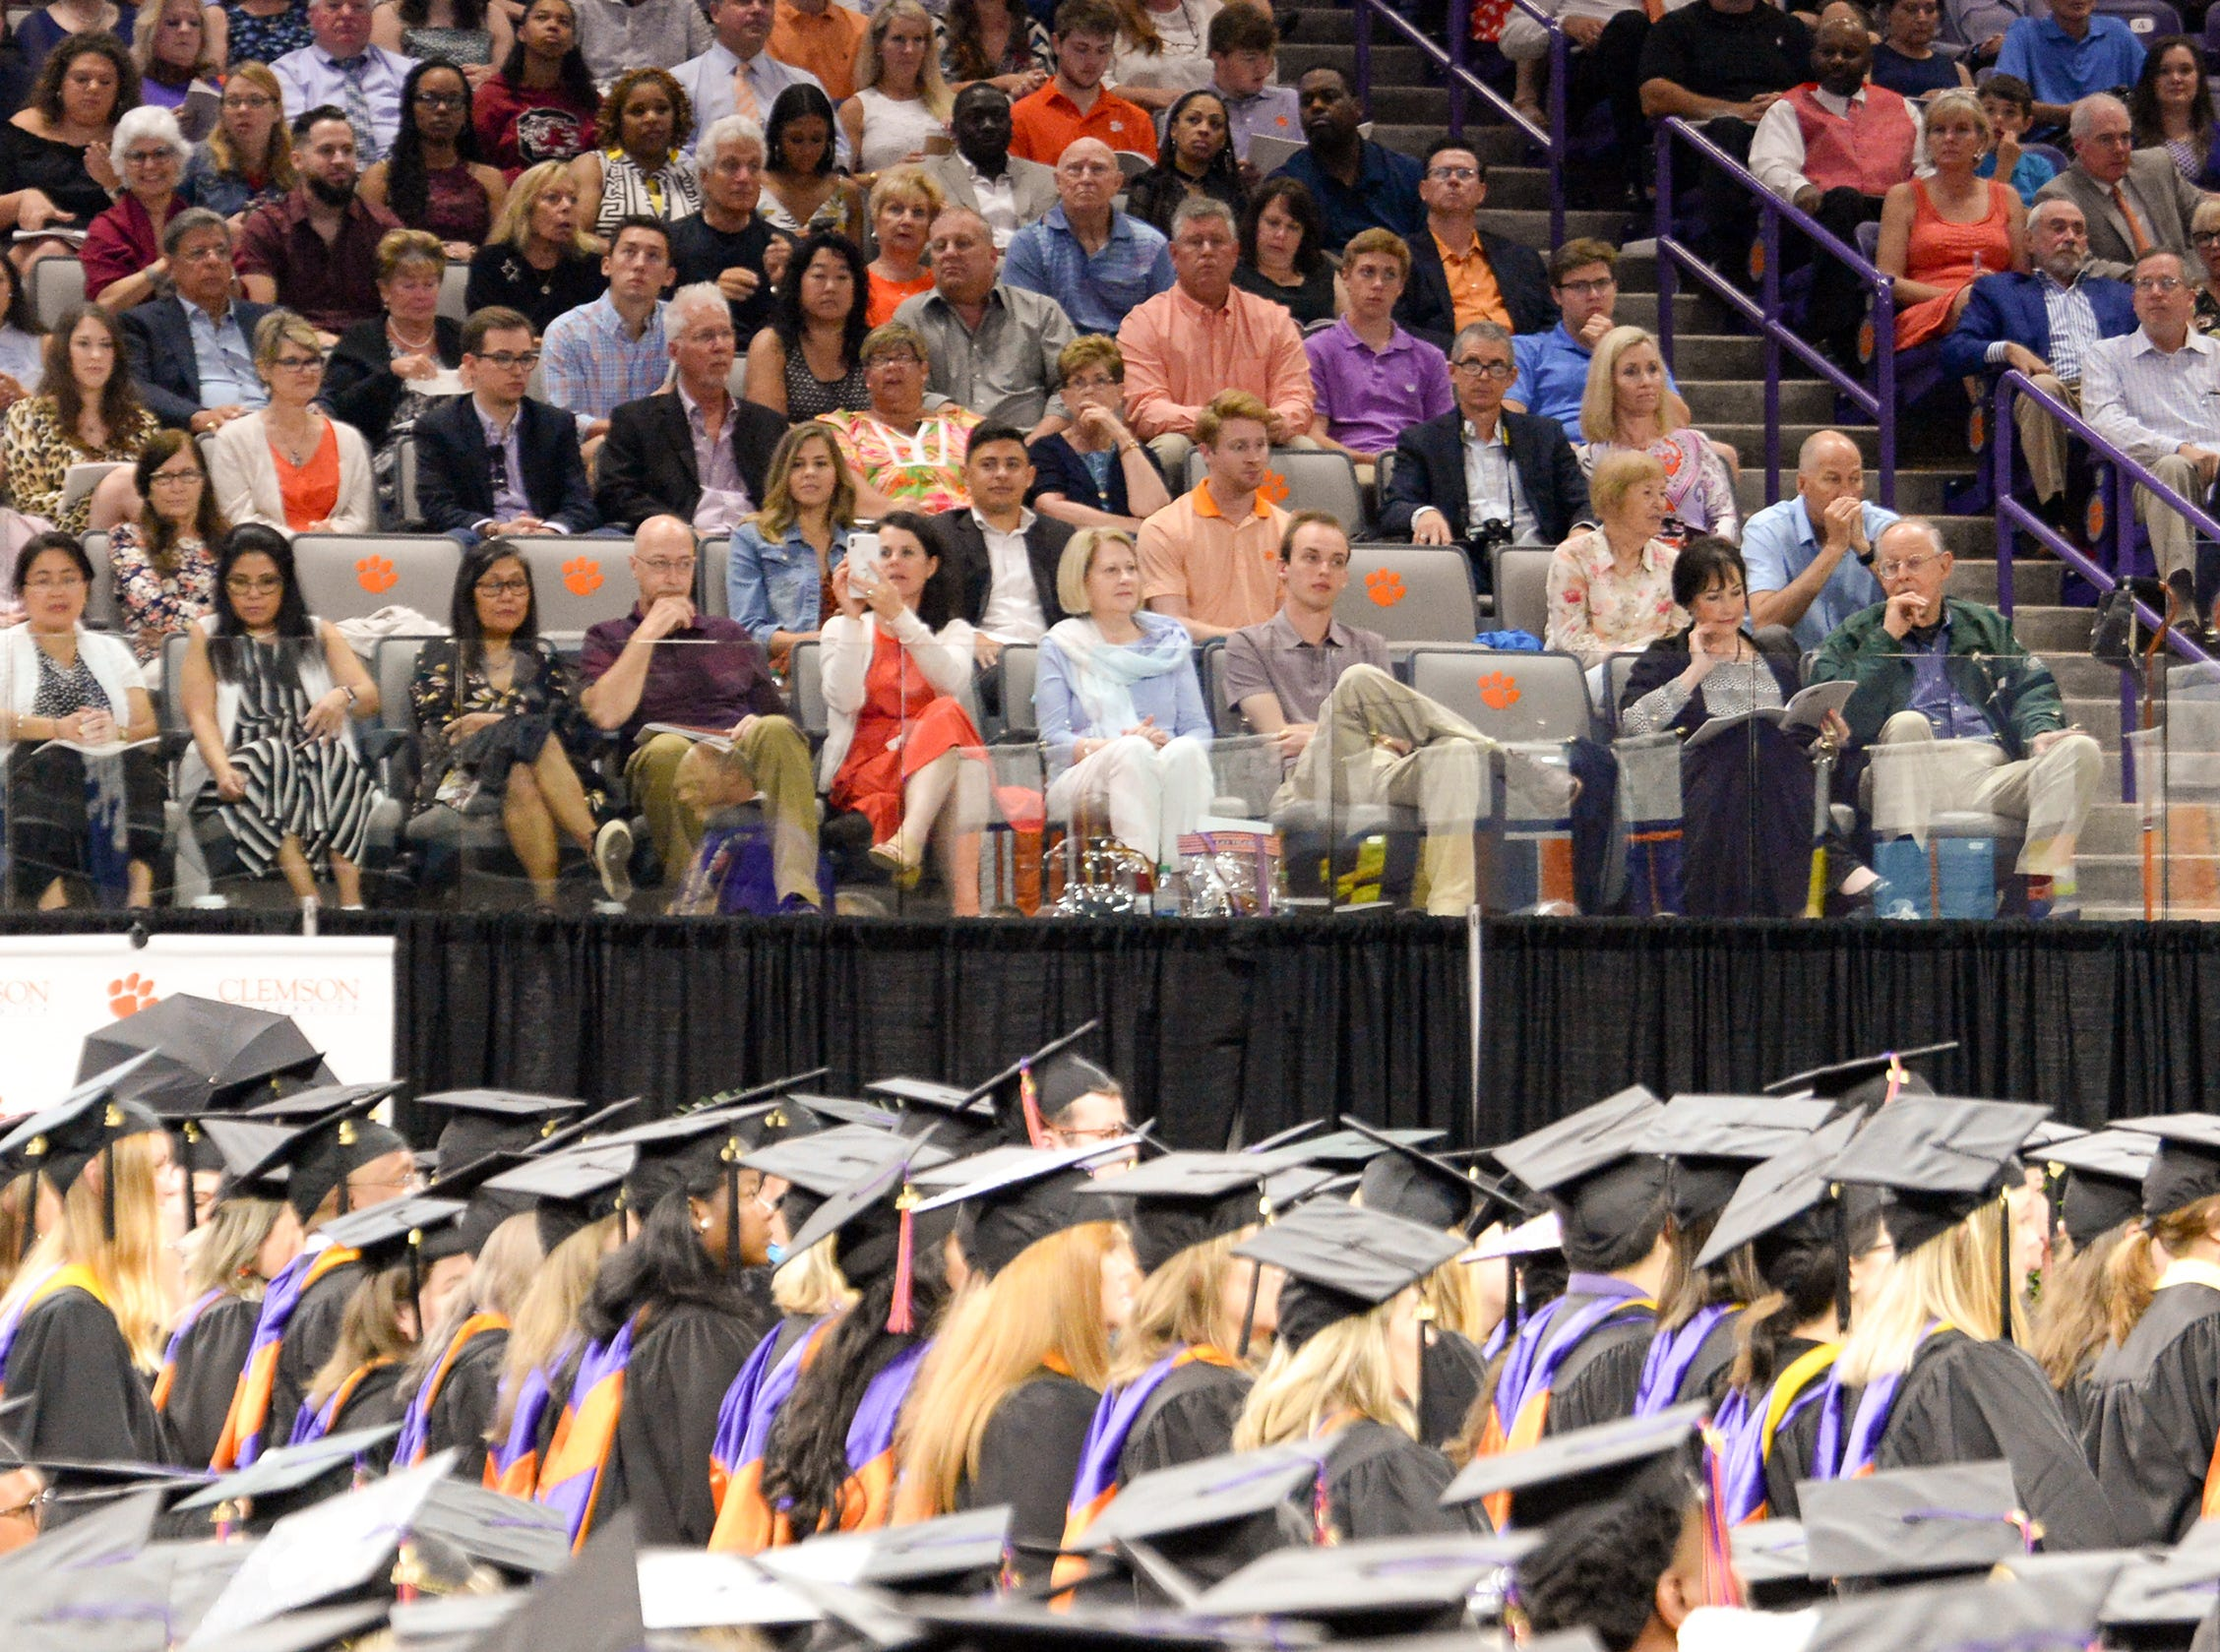 Visitors sit in the stands during Clemson University commencement ceremonies in Littlejohn Coliseum in Clemson Friday, May 10, 2019.